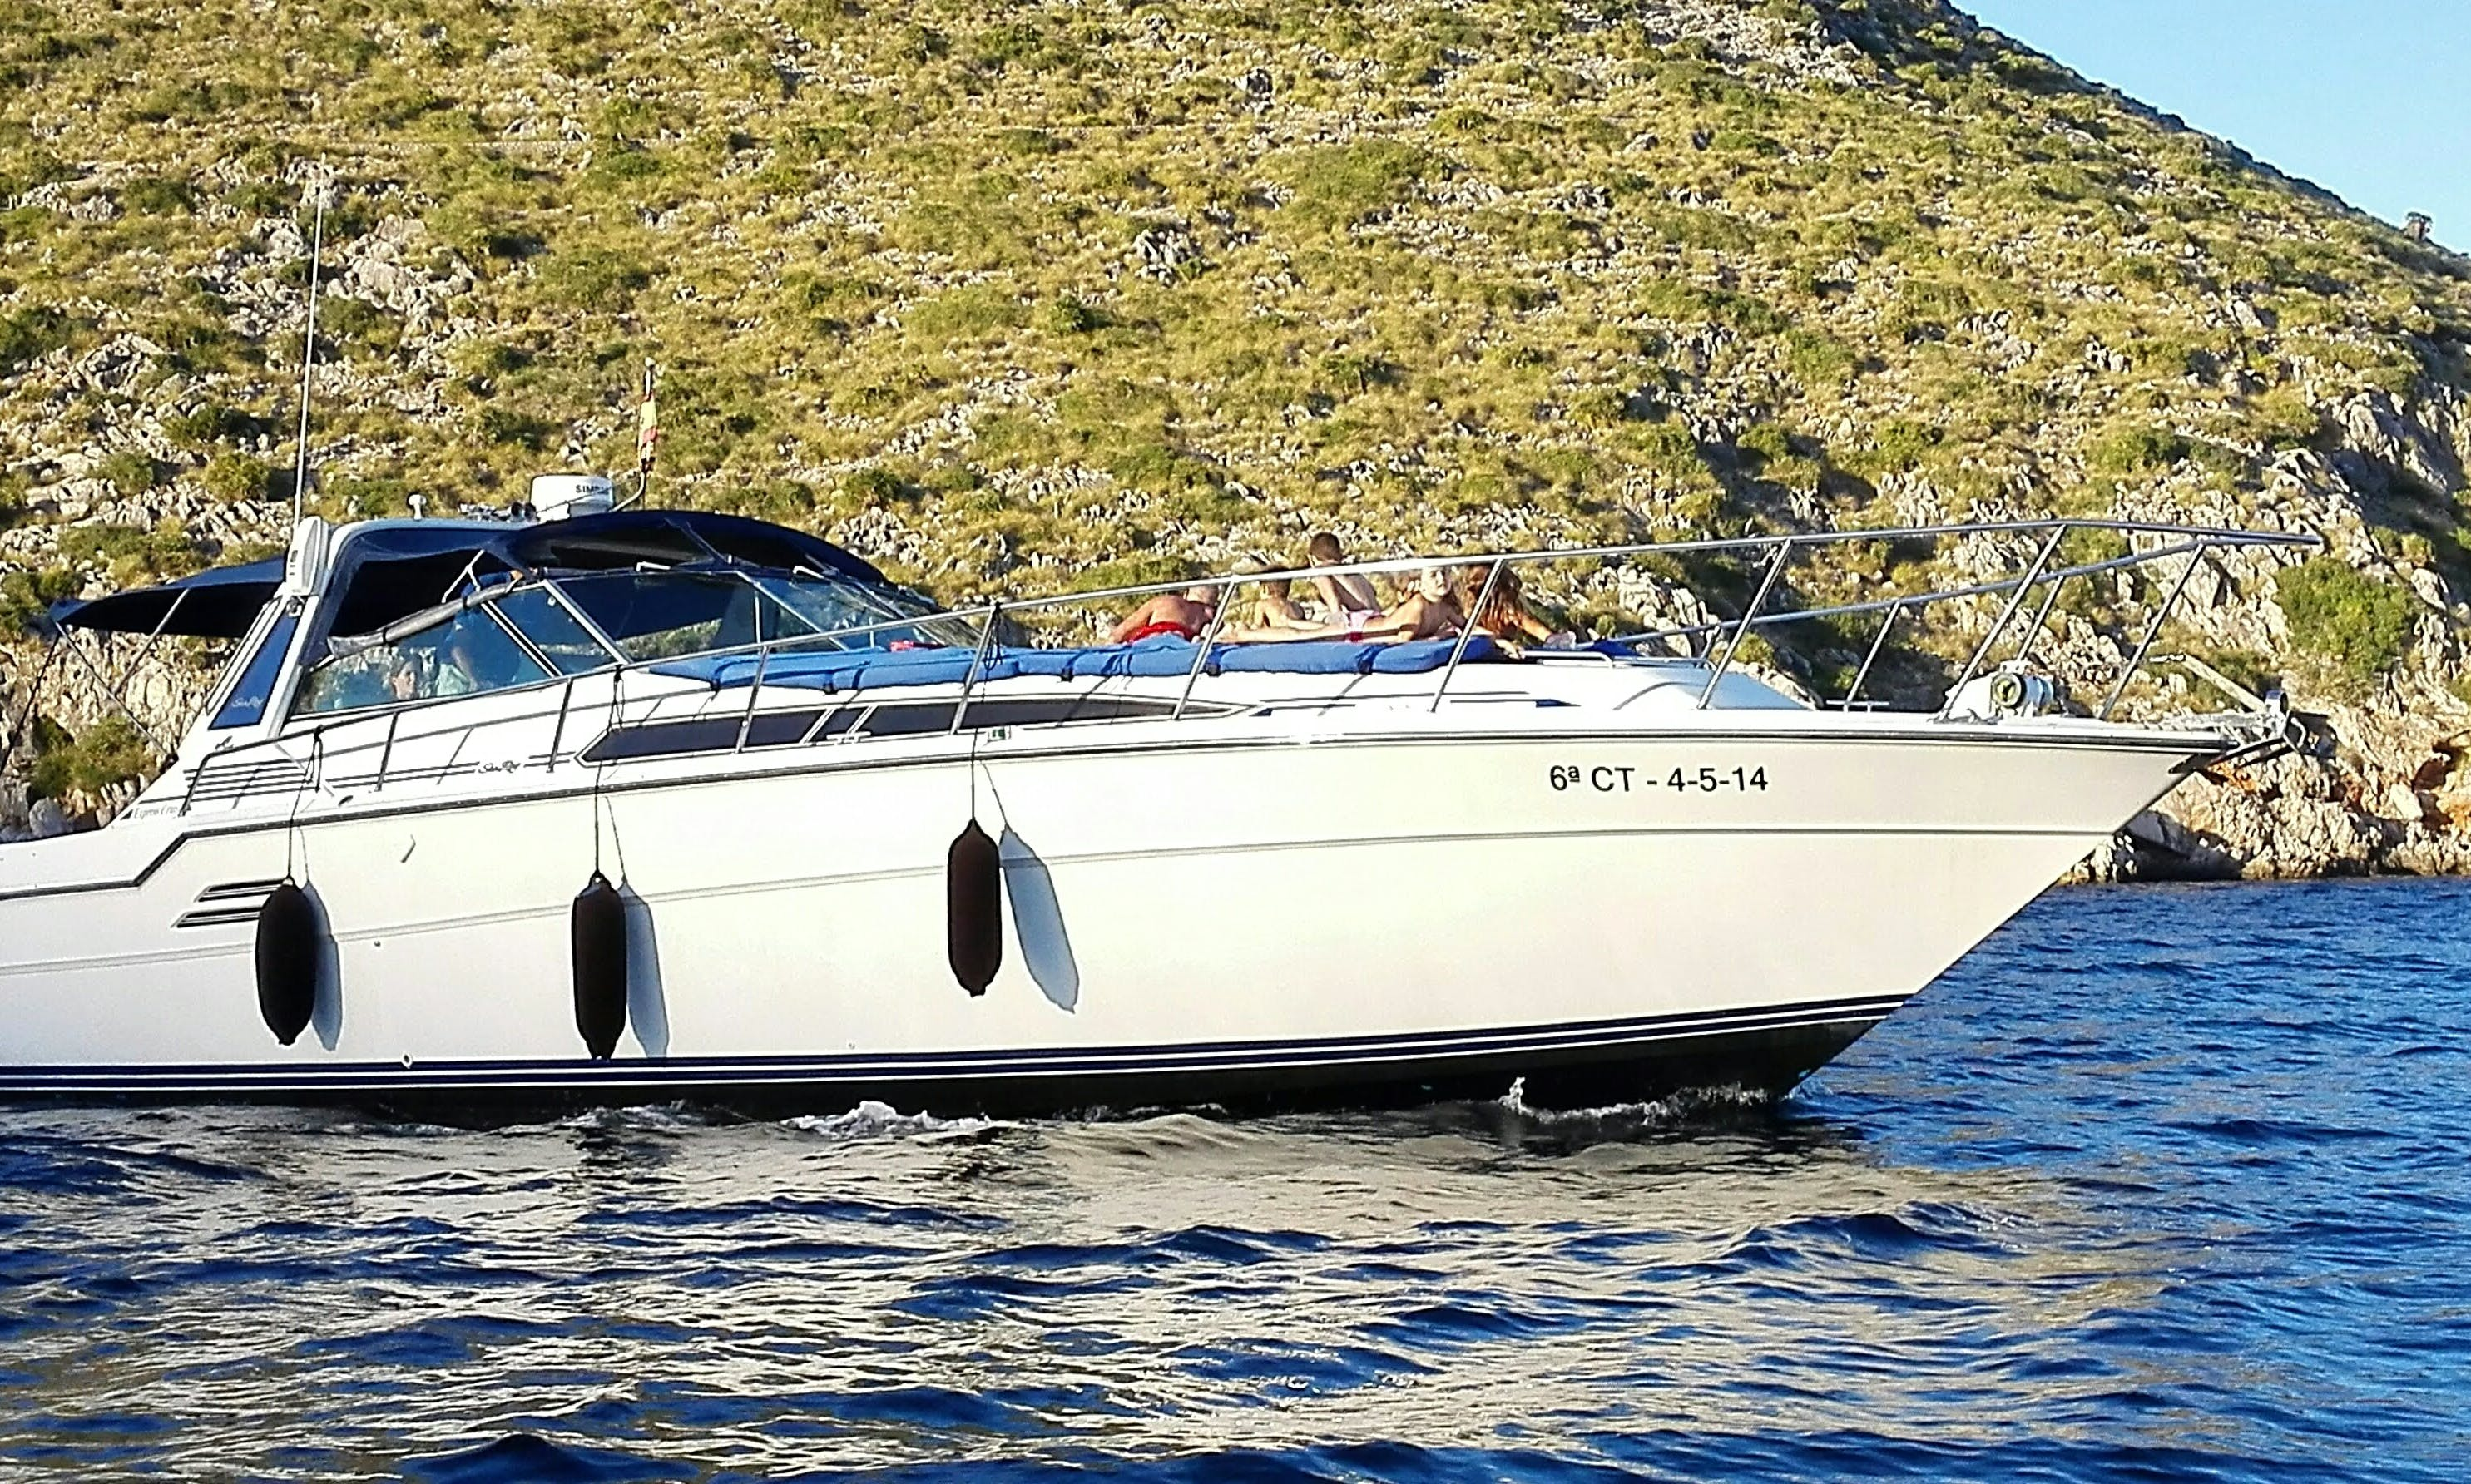 """Captained Charter on """"Perseo"""" Sea Ray 460 Express Cruiser in Pollença, Spain"""